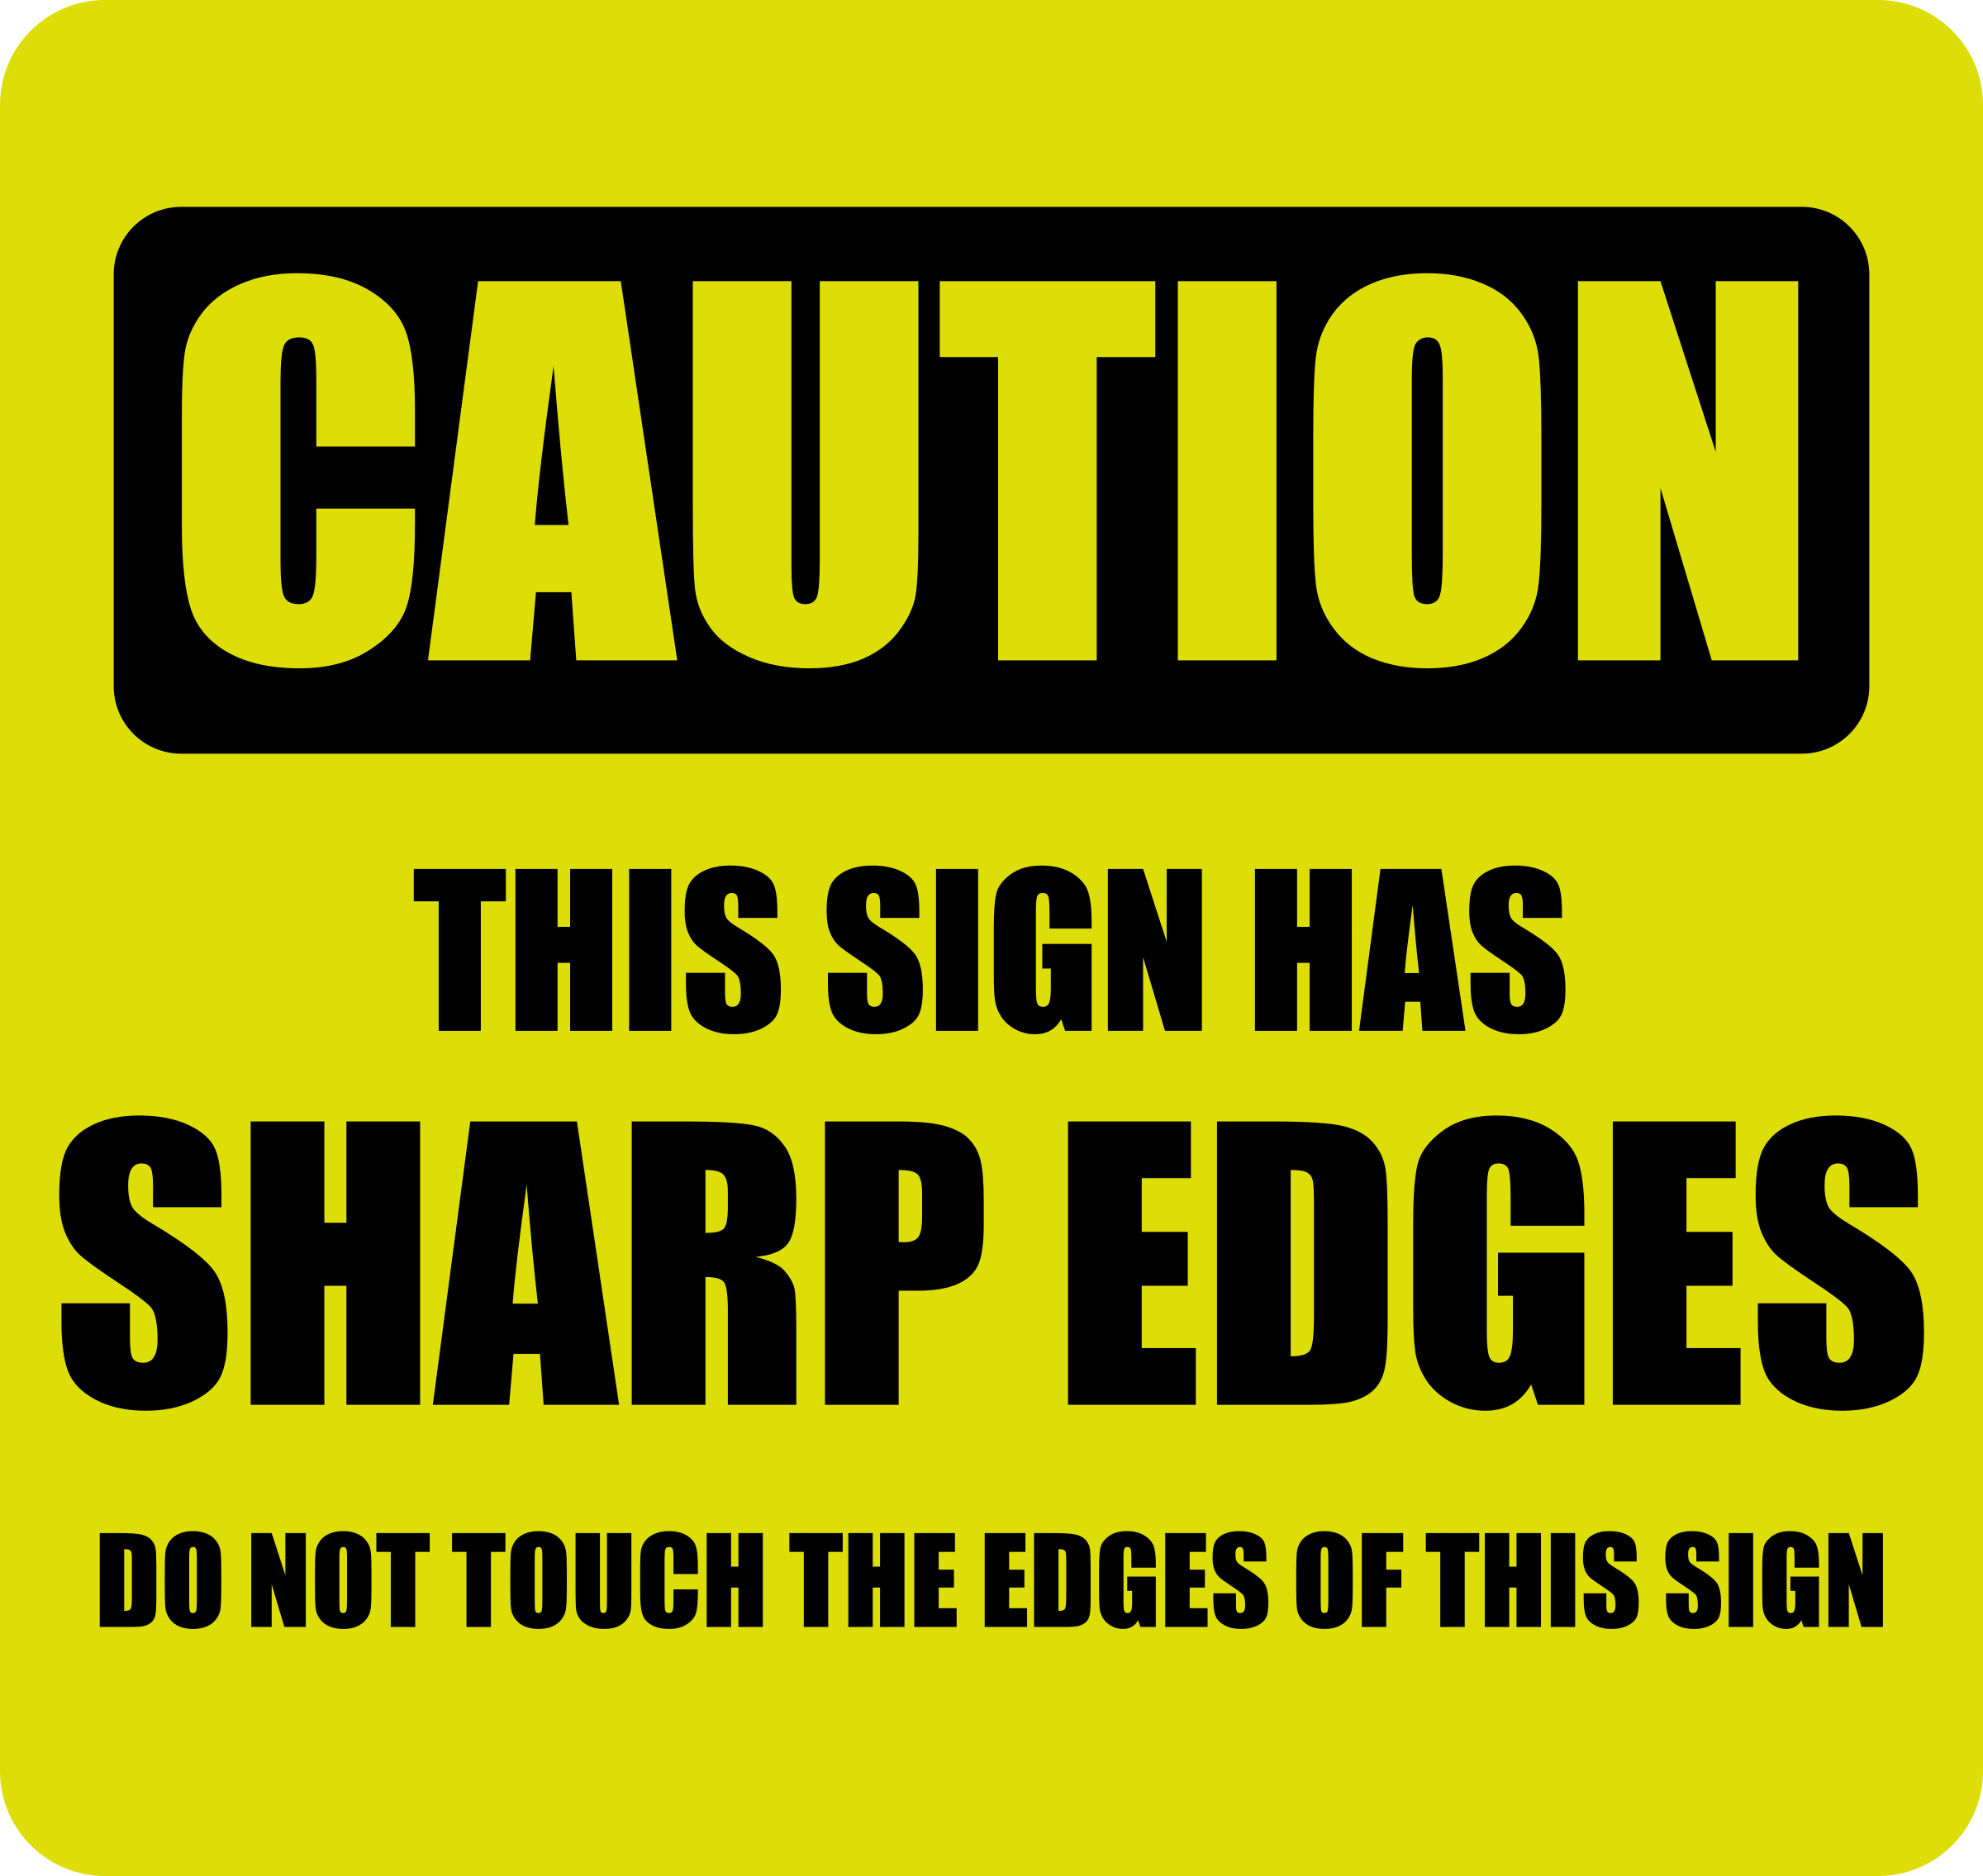 Caution This Sign Has Sharp Edges by GDJ